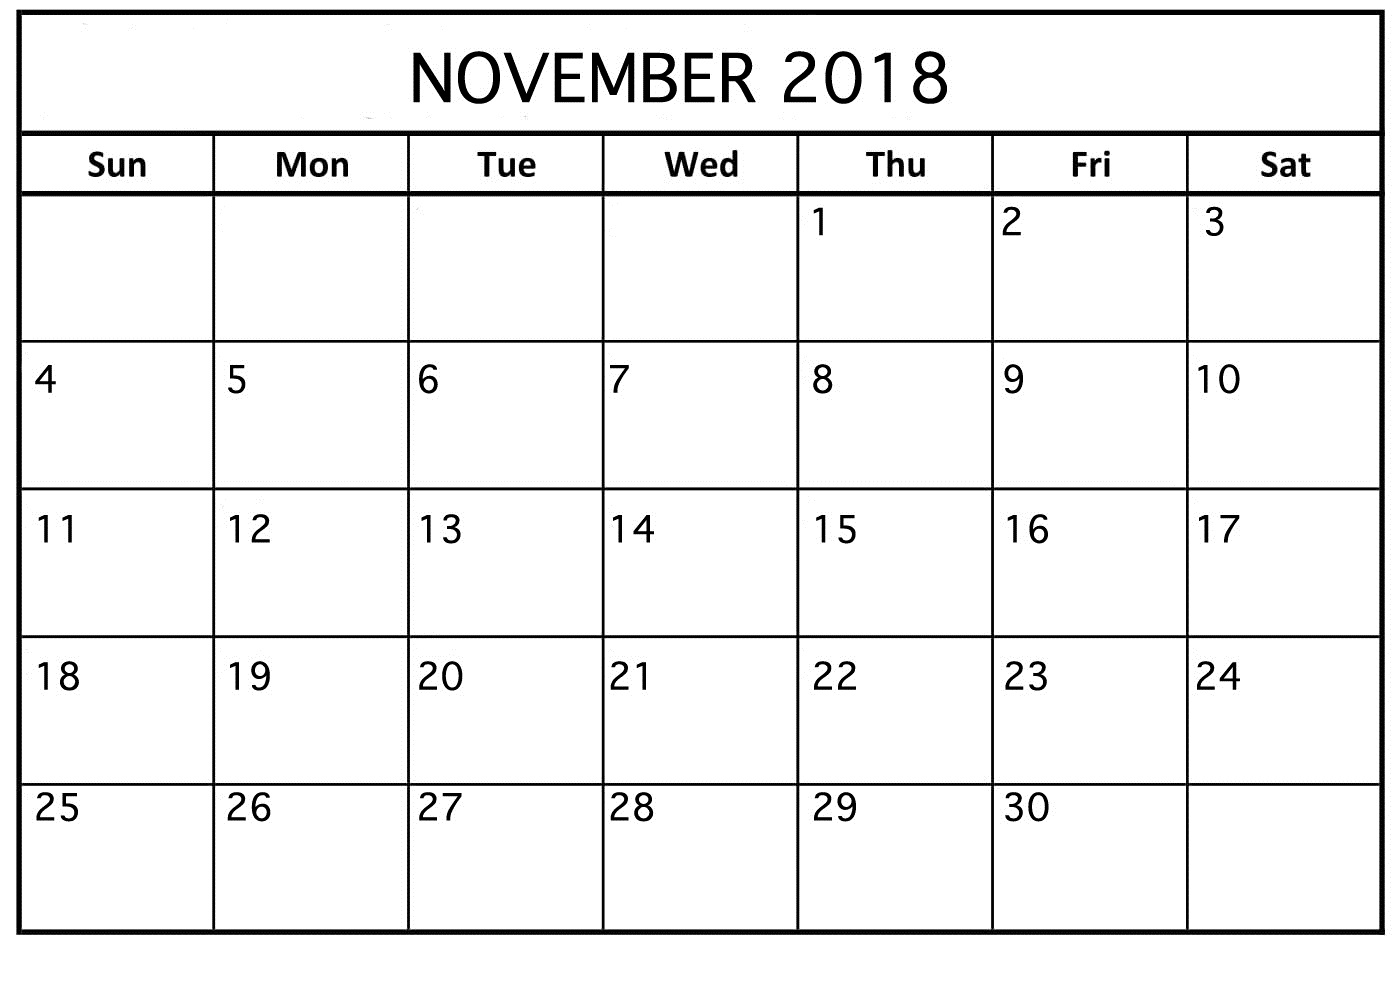 november 2018 calendar for android printable calendar template::November 2018 Calendar